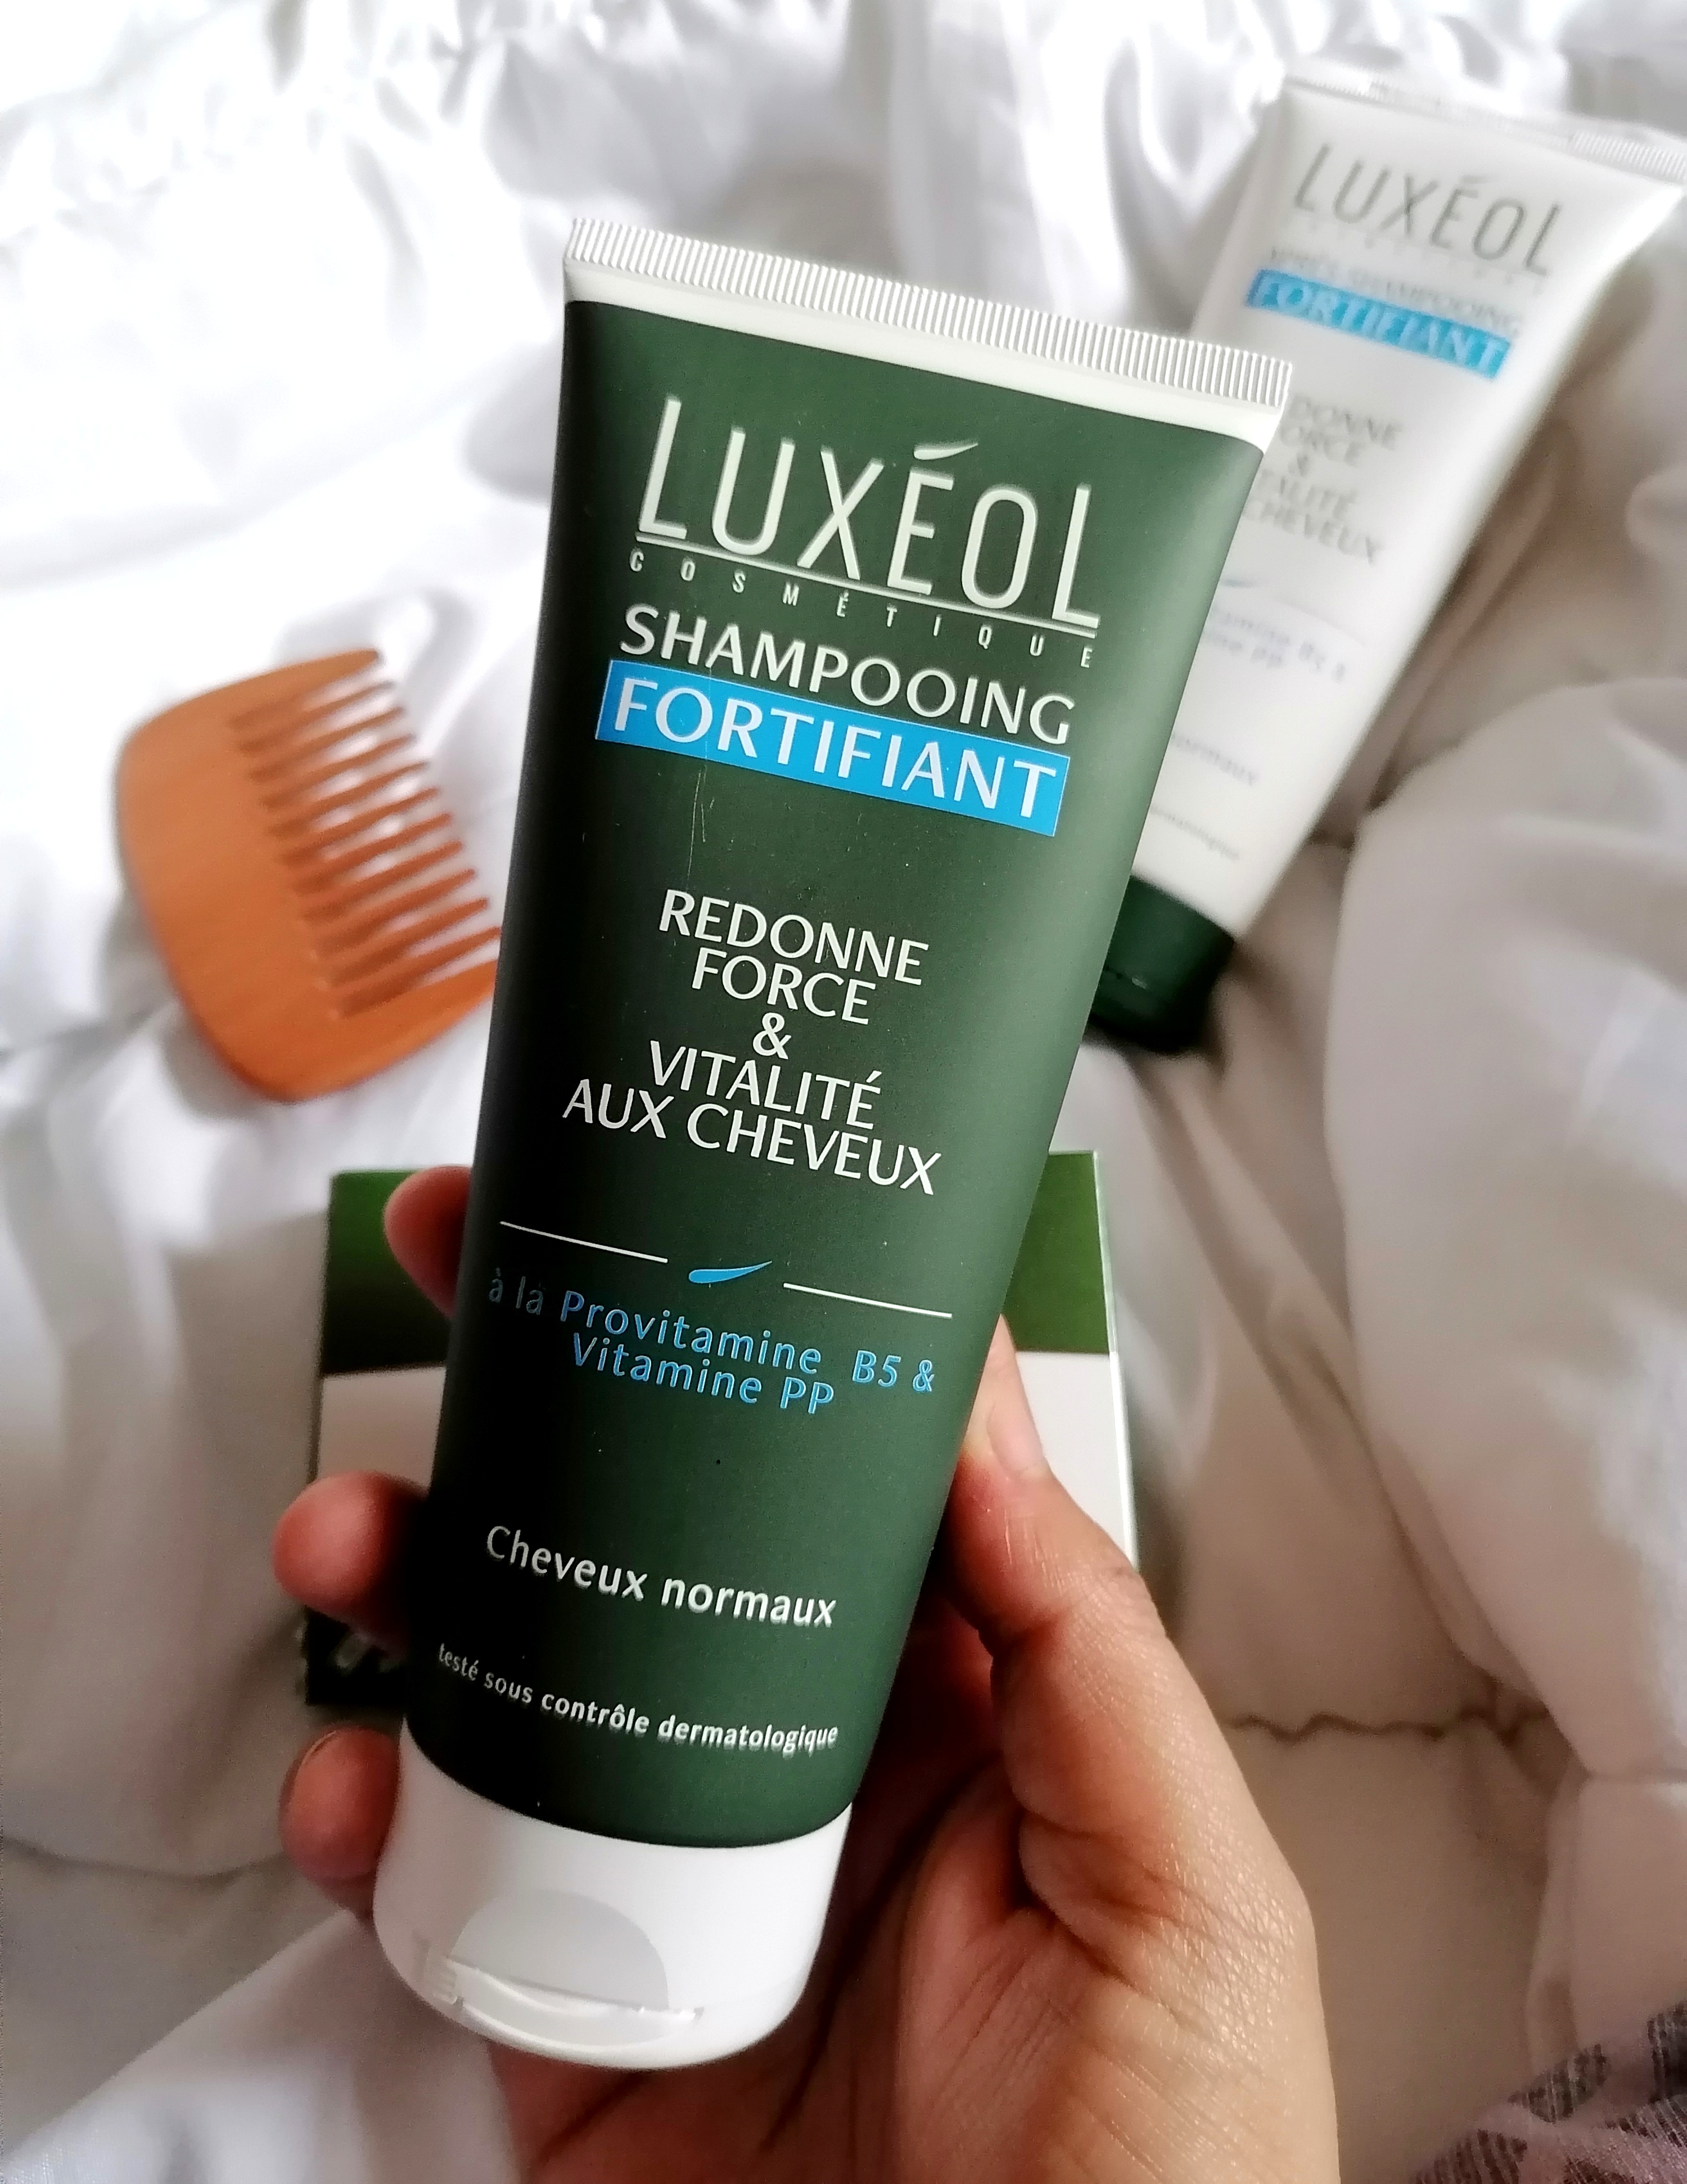 Une routine cheveux fortifiante 100% Luxéol! 💙